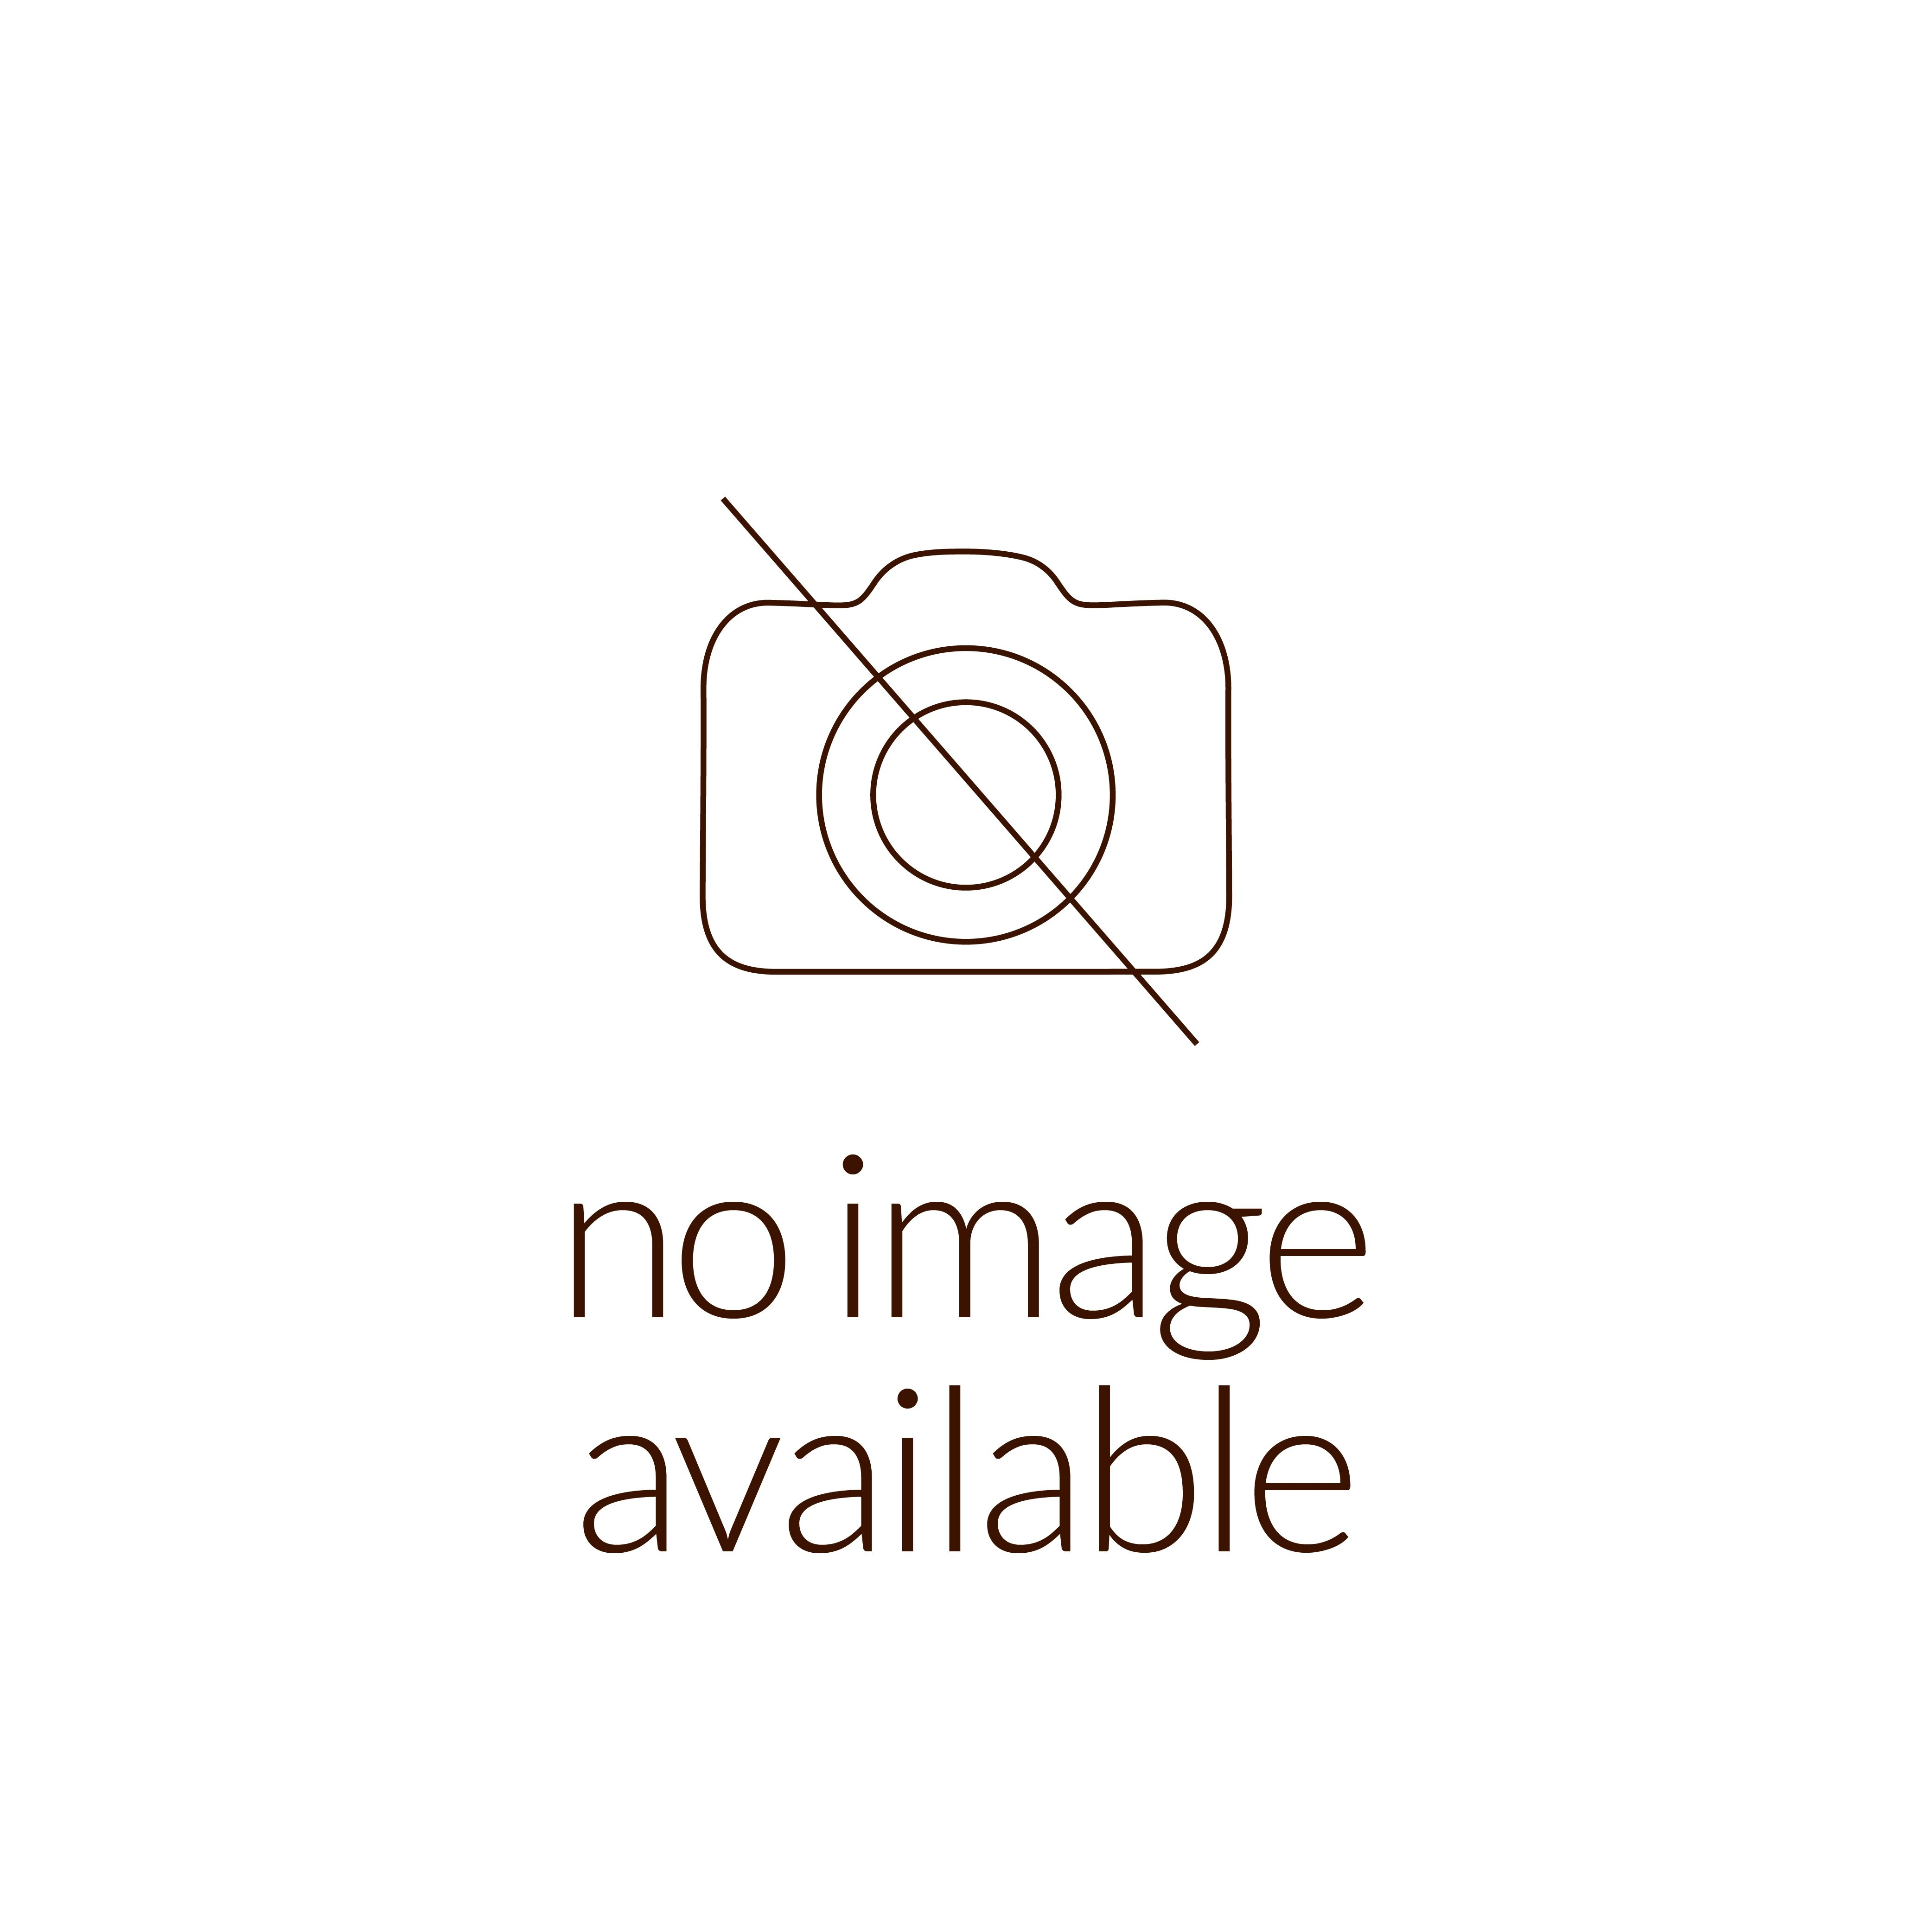 State Medal, Statio XIII, Mary lamenting over Jesus' death, Silver 999, 39 mm, 1 oz - Obverse